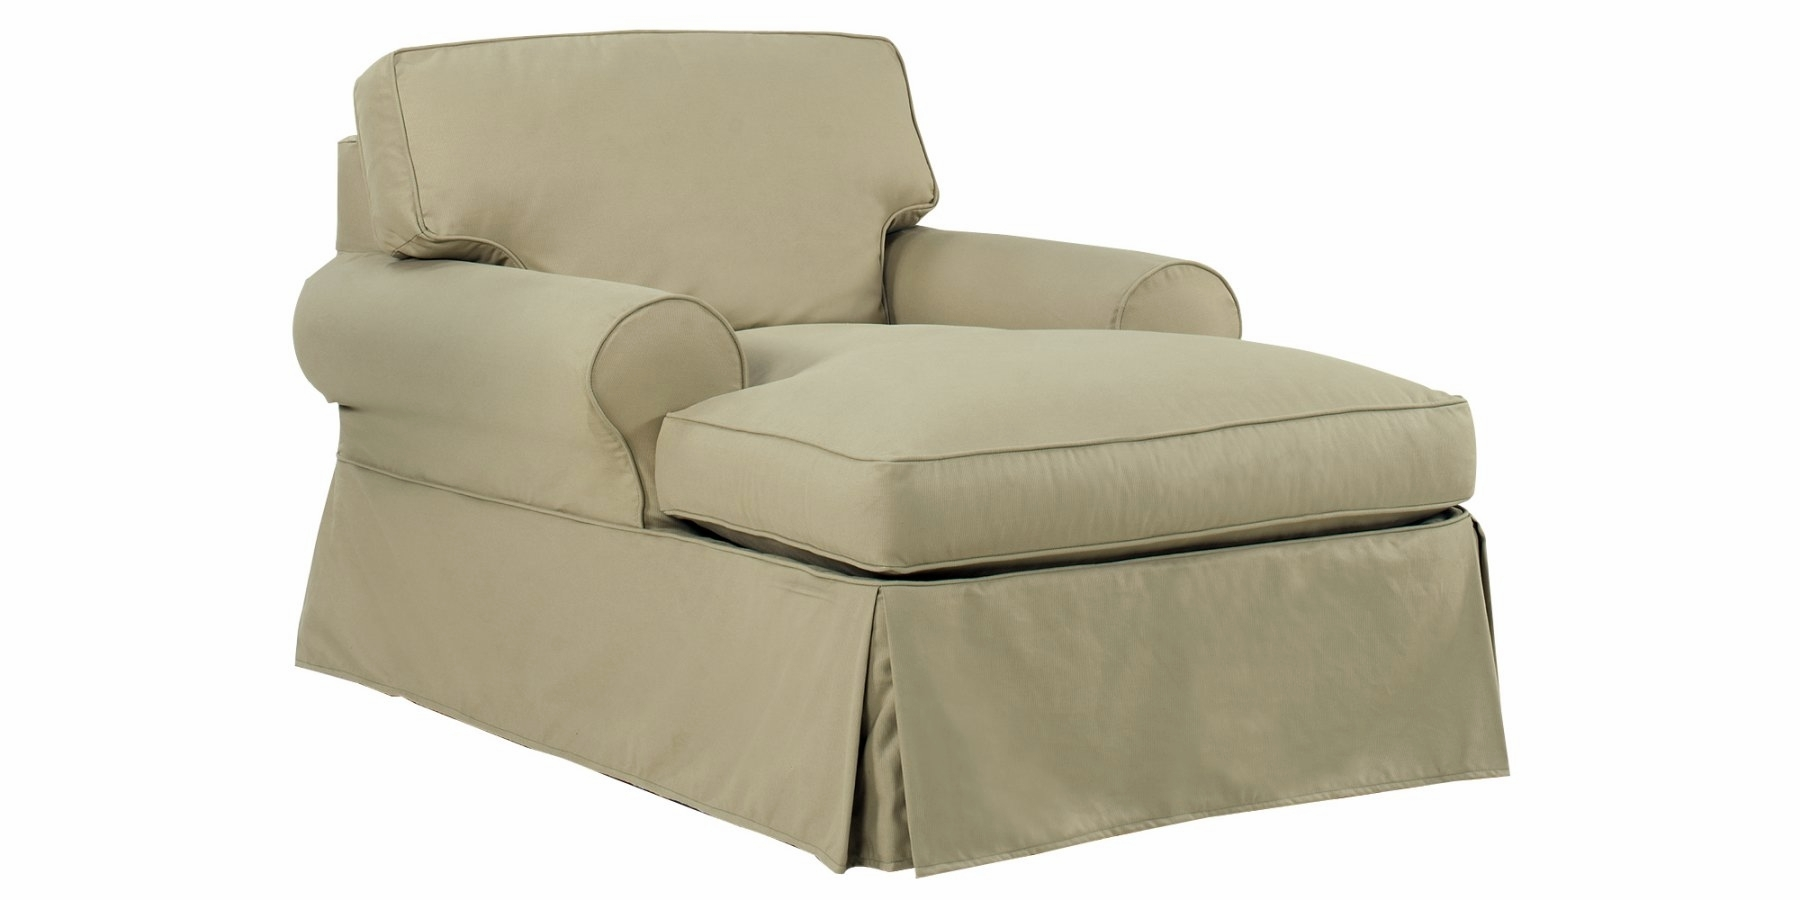 Furniture Microfiber Chaise Lounge For Comfortable Sofa Design Throughout Sofa Lounge Chairs (Image 10 of 14)